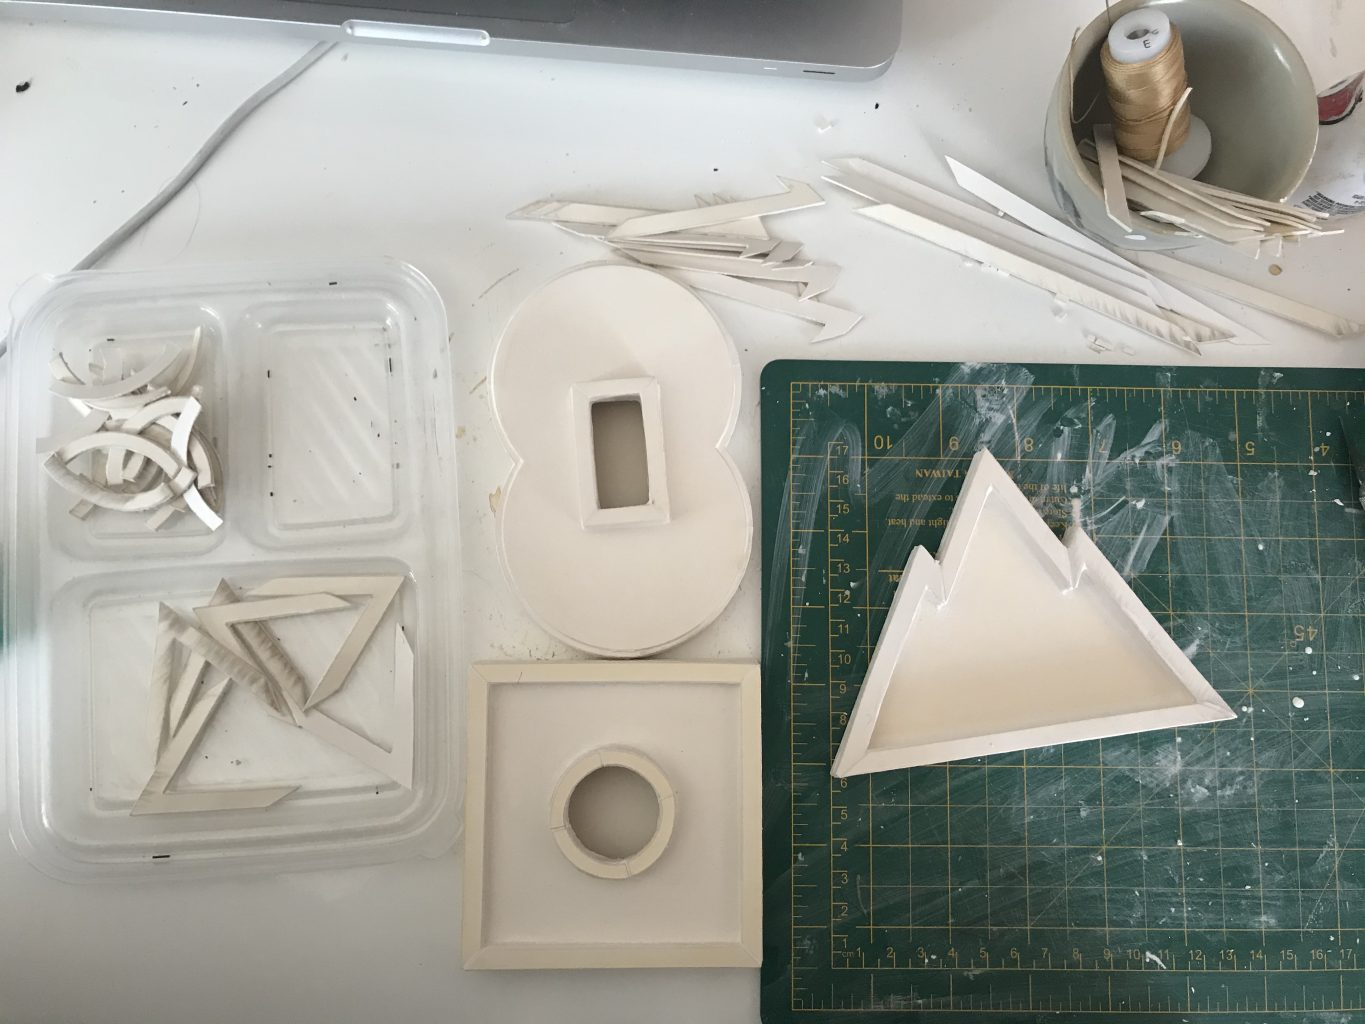 Geometric white pieces bring cut and constructed from clay on a table with a cutting mat